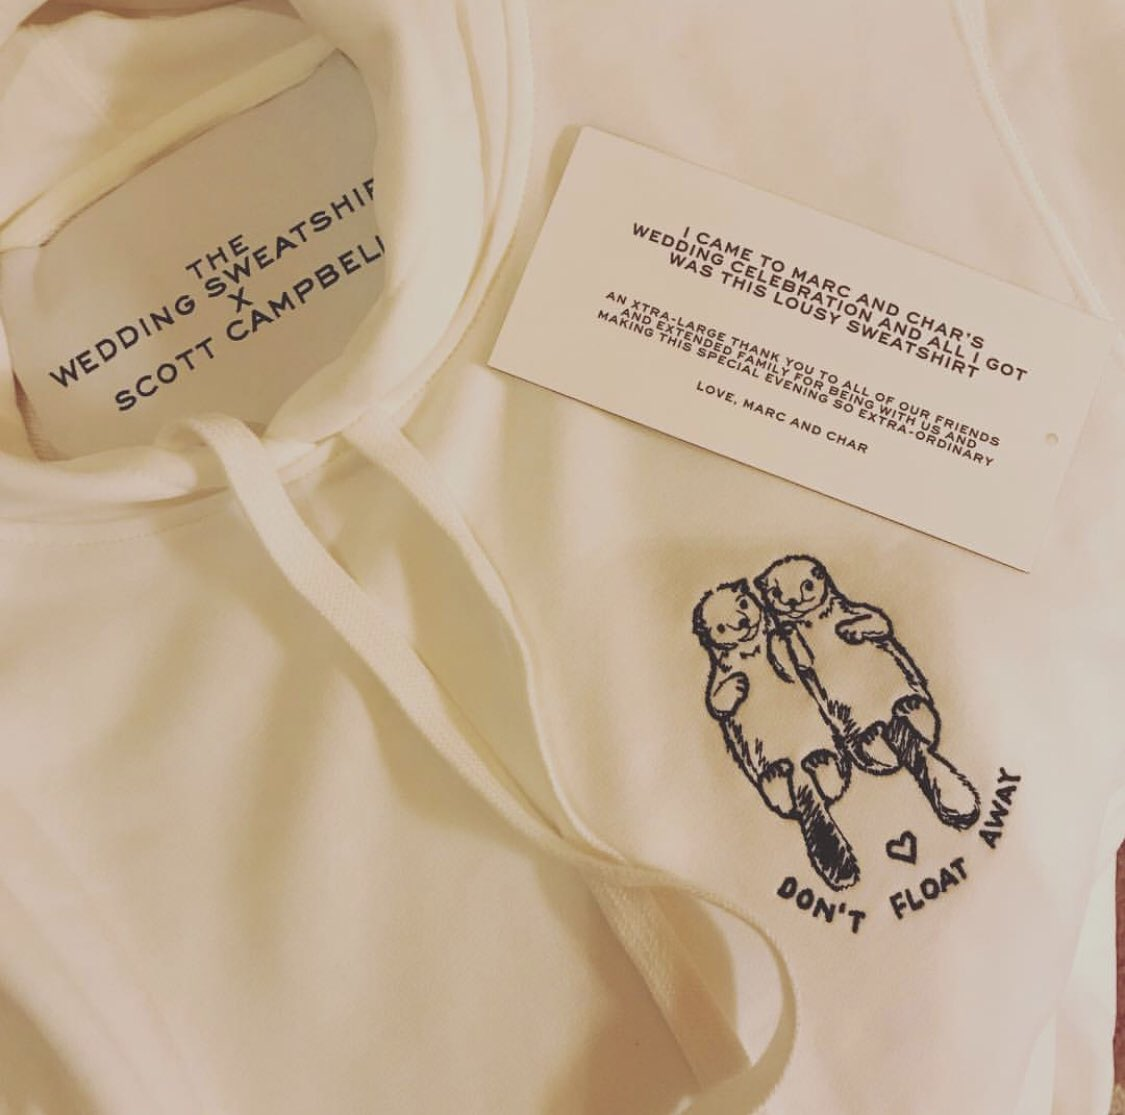 The Marc Jacobs wedding merch was excellent: